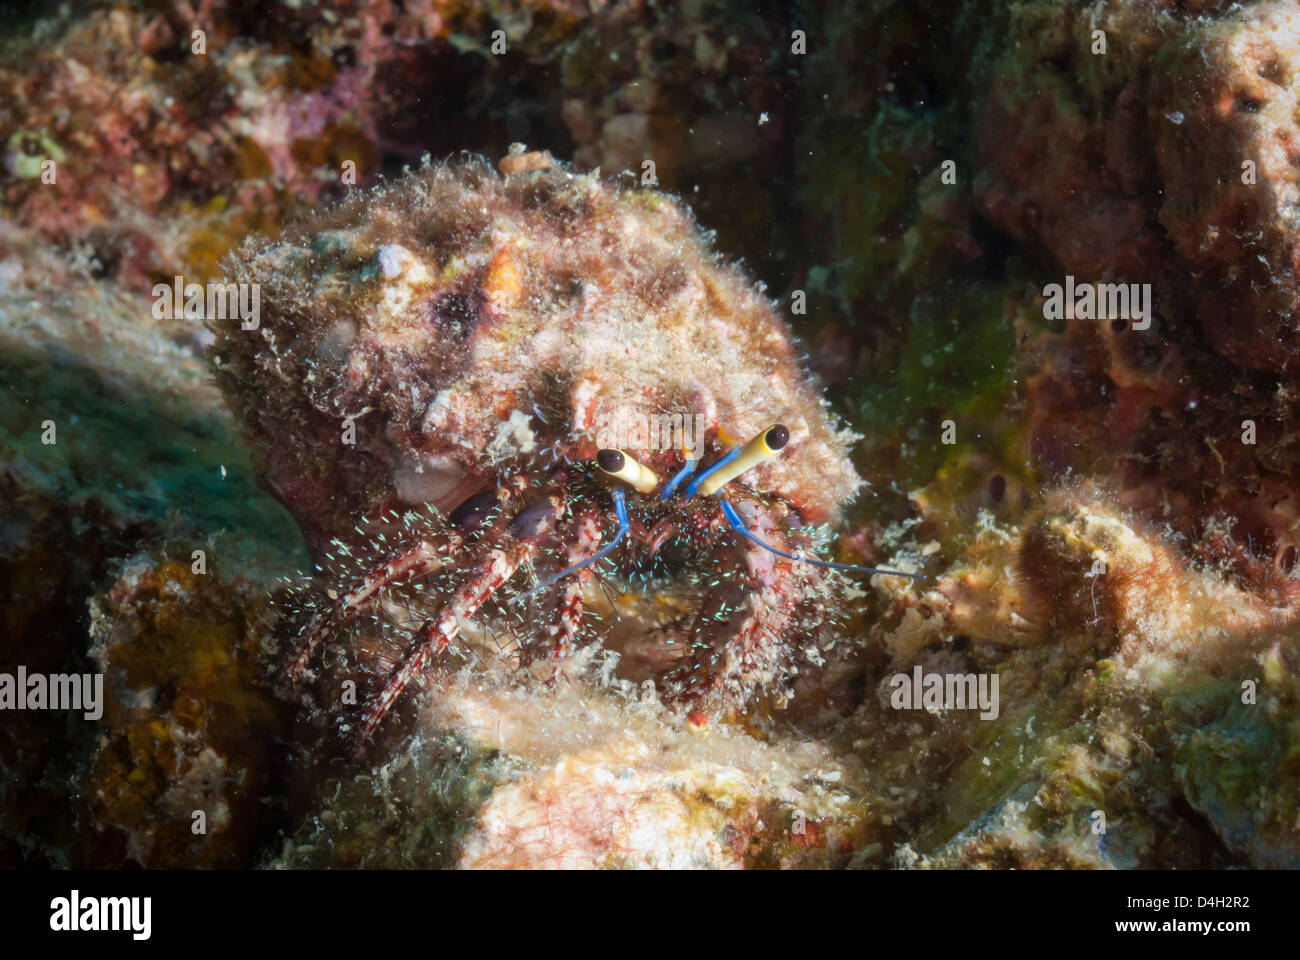 Hairy hermit crab (Aniculus elegans), SouthernThailand, Andaman Sea, Indian Ocean, Southeast Asia - Stock Image